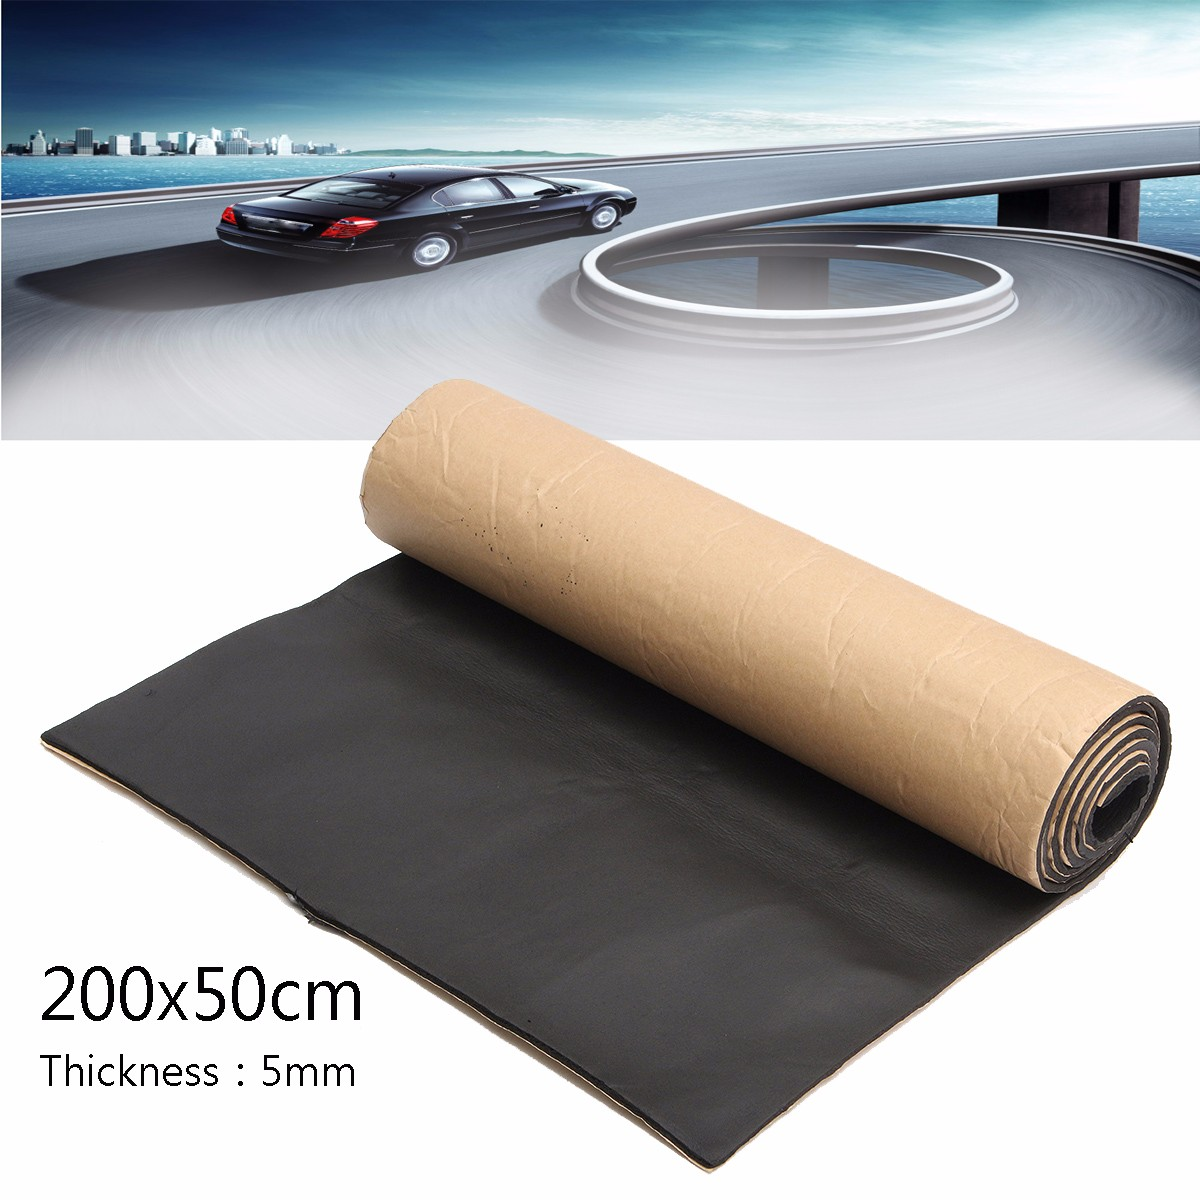 1Roll 200cmx50cm Car Sound Proofing Deadening Anti-noise Sound Insulation Cotton Heat Closed Cell Foam Interior Accessories